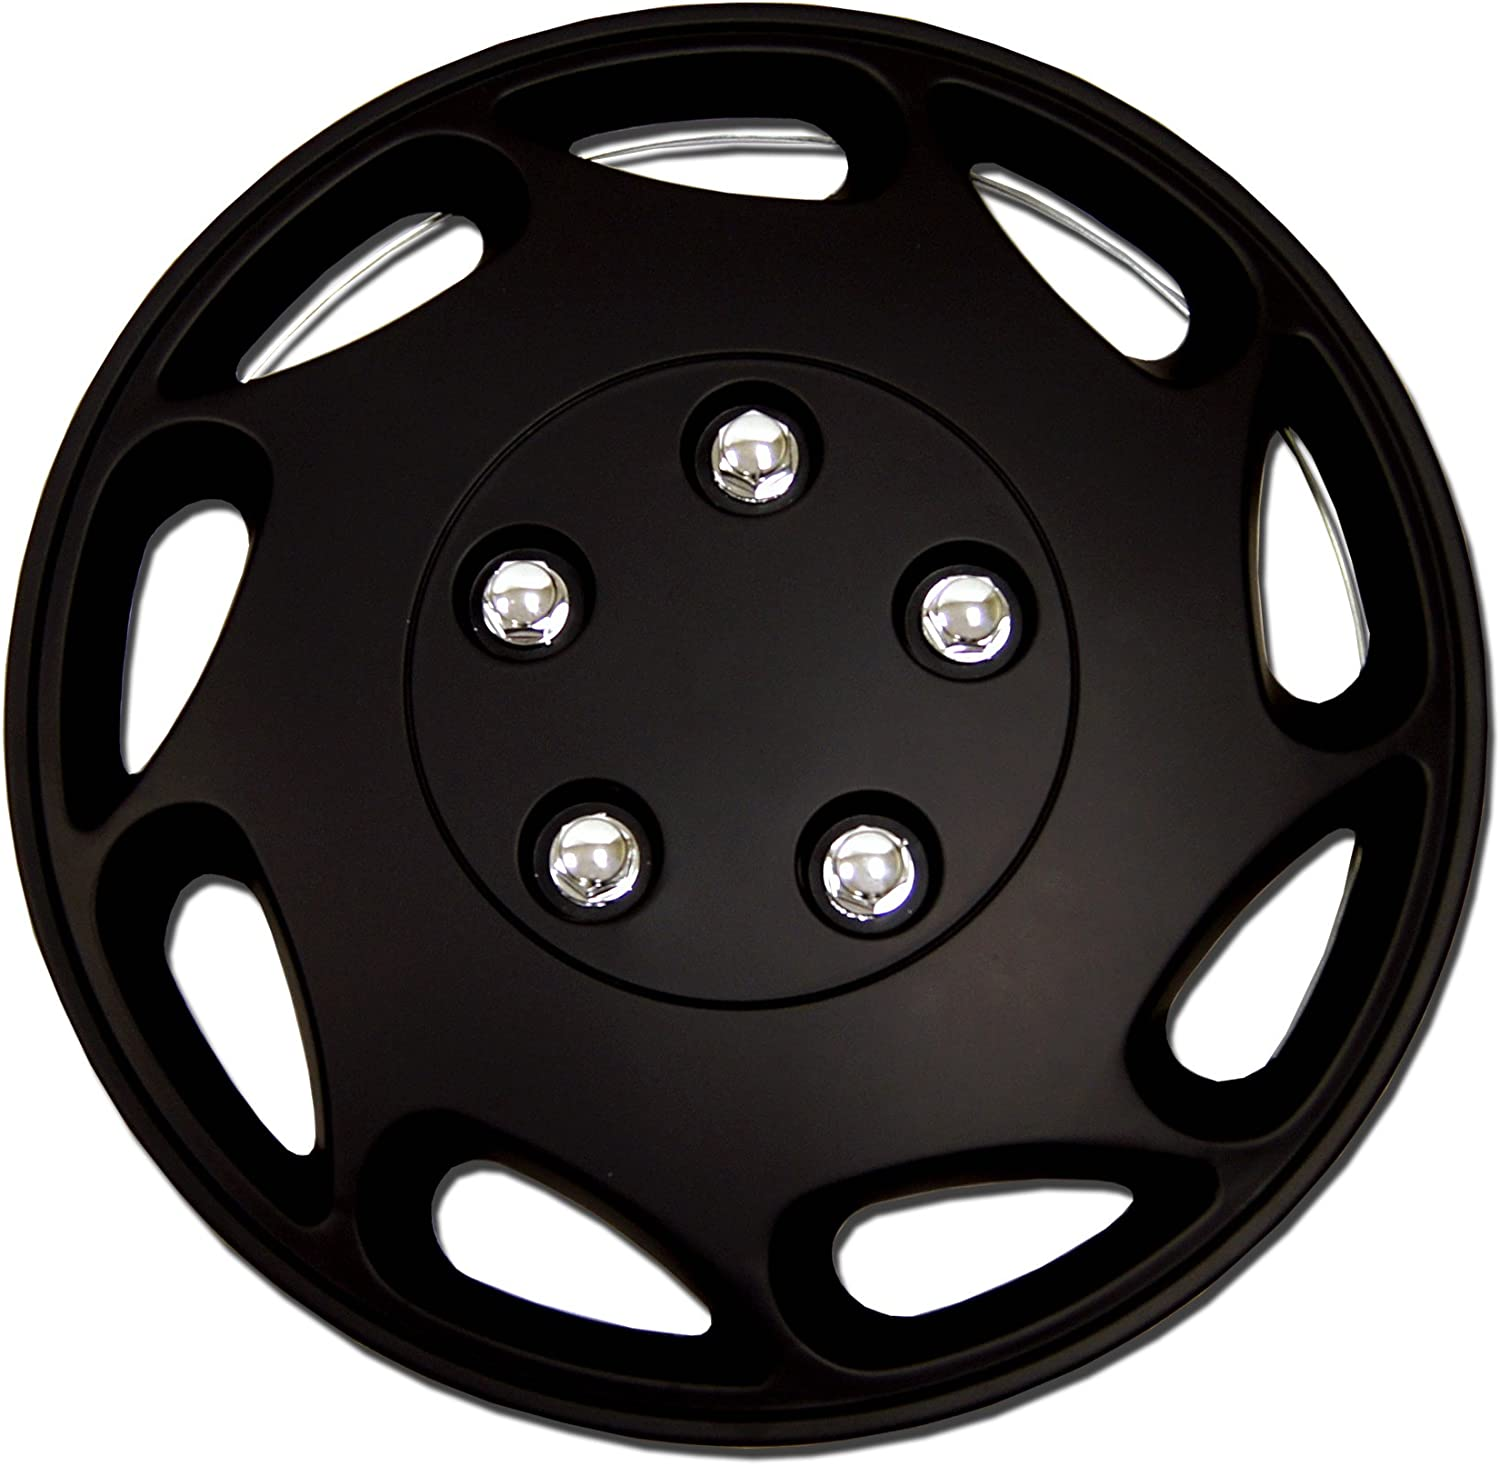 Mesa Mall TuningPros WSC-807B15 - Pack of Hubcaps 15-Inches Snap 4 Style 5 popular